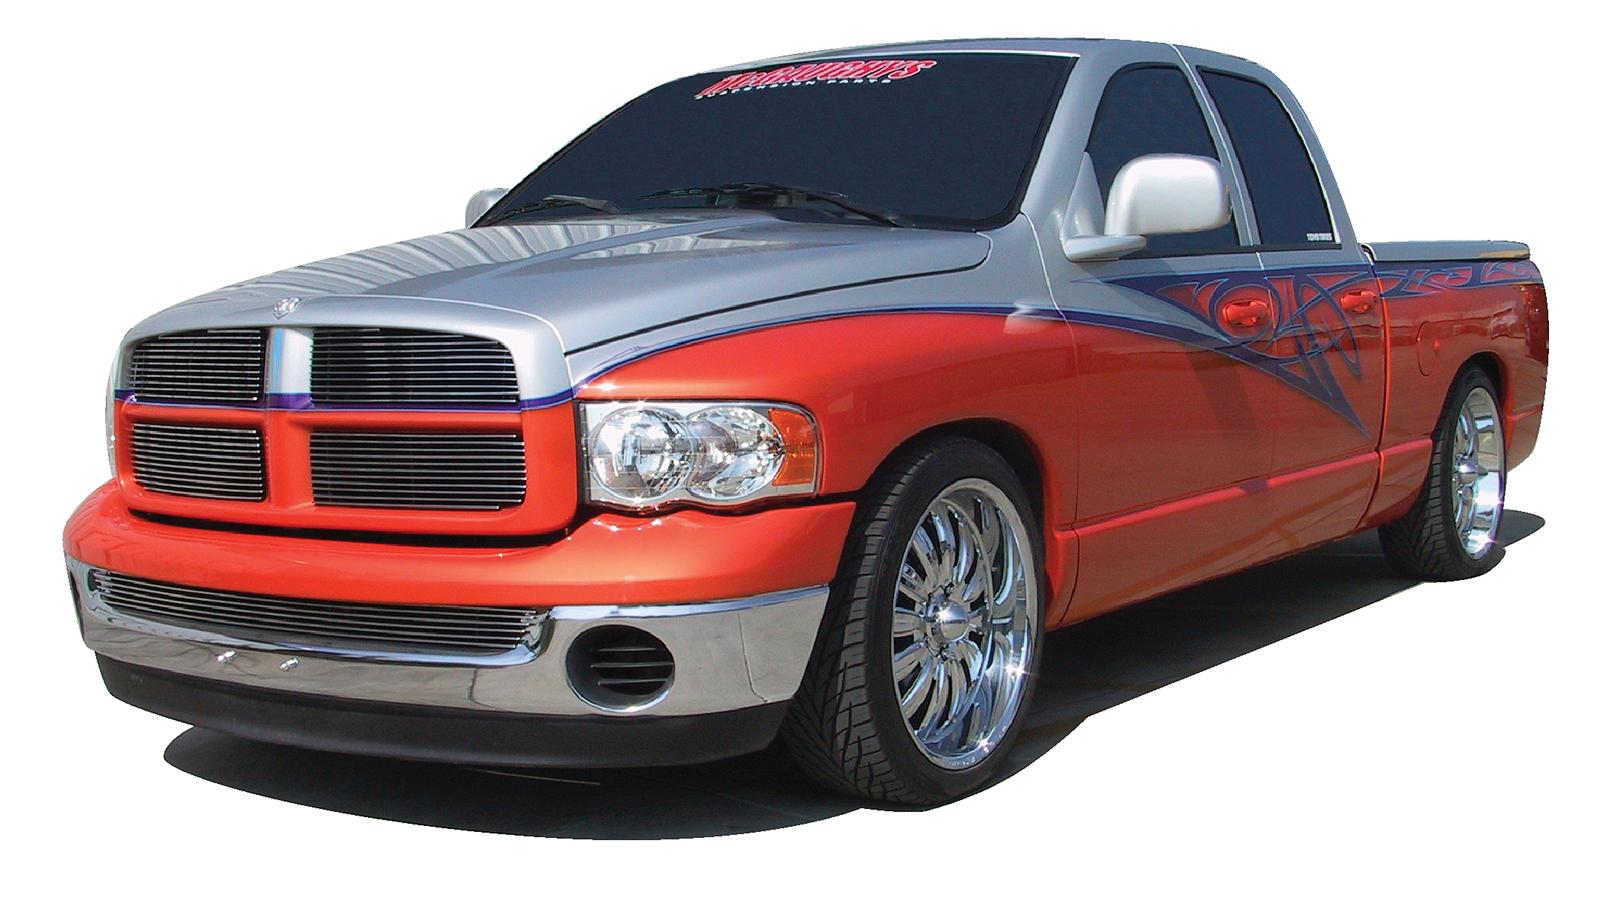 hight resolution of 2005 dodge ram 1500 mcgaughy s suspension lowering kits 94006 free shipping on orders over 99 at summit racing